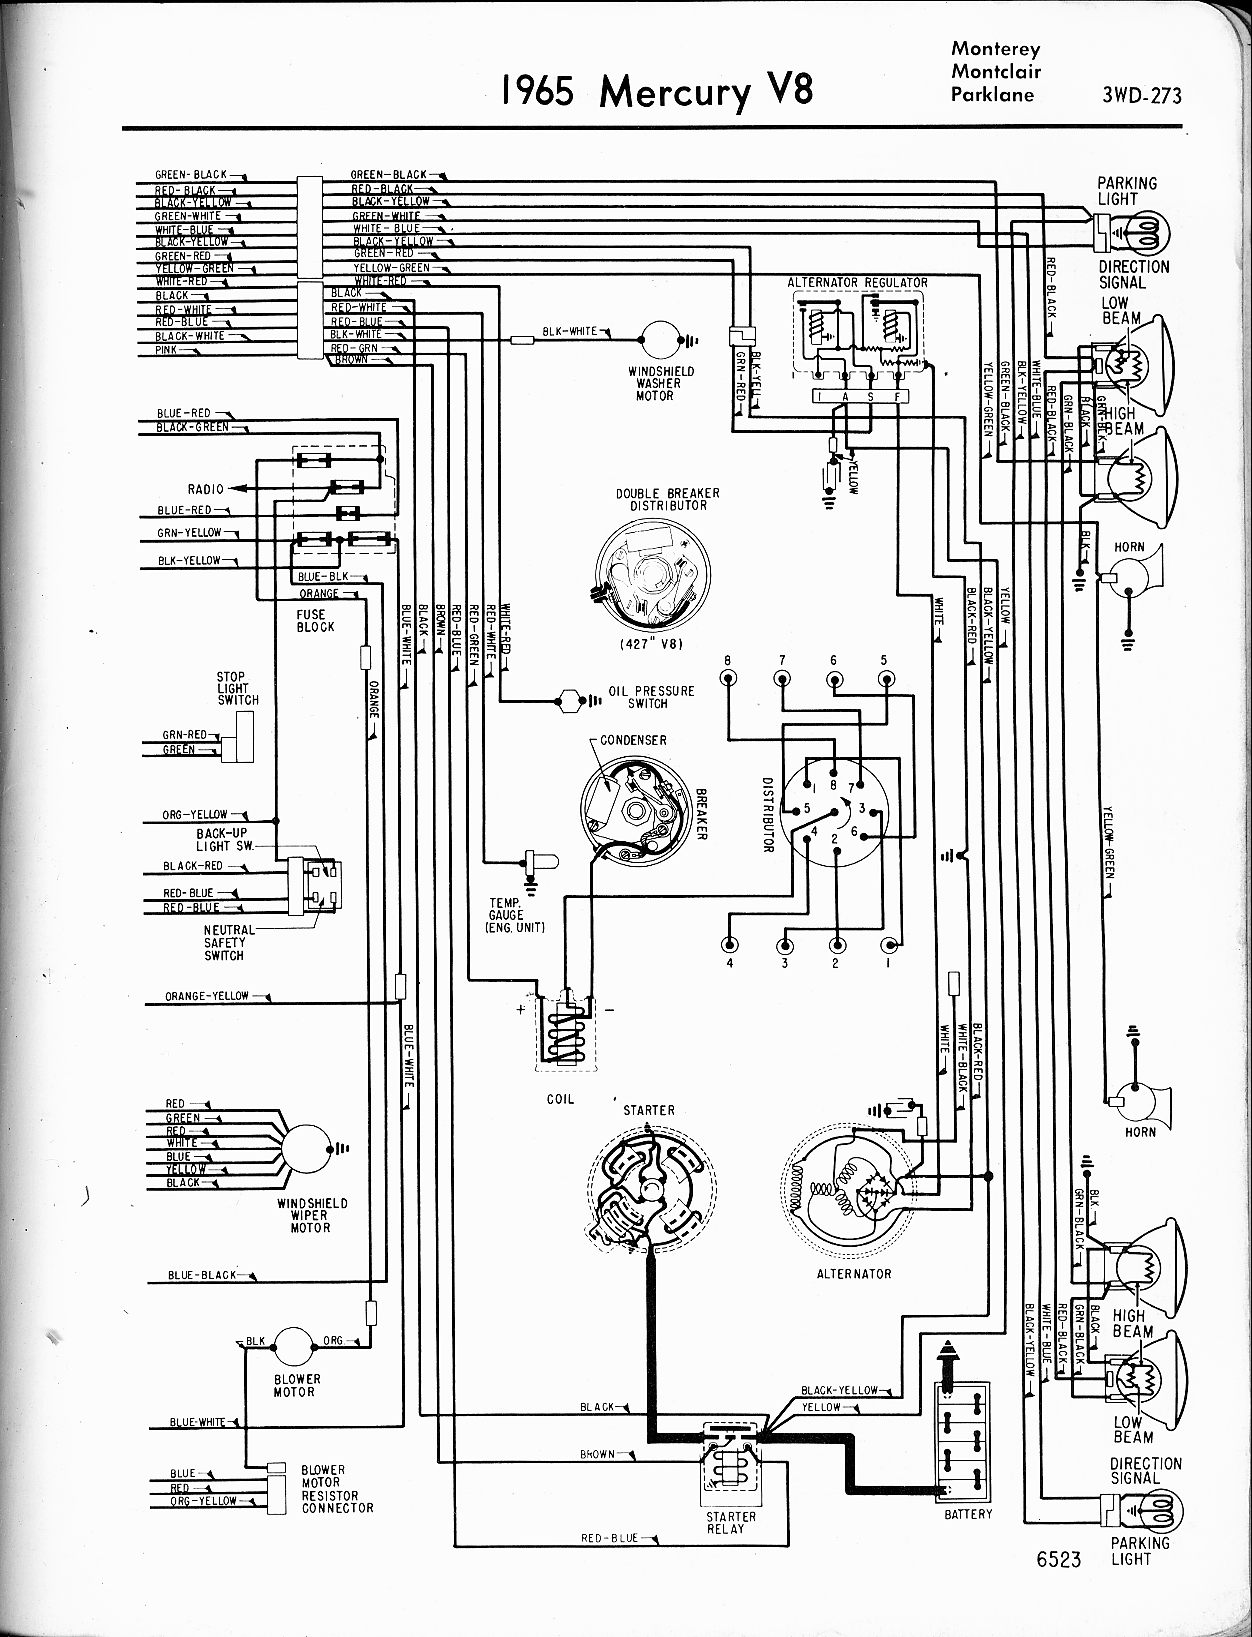 Mercury Wiring Diagrams Schematics Simple Diagram Schema Salt Spreader Wire For The Old Car Manual Project Buyers 1965 V8 Monterey